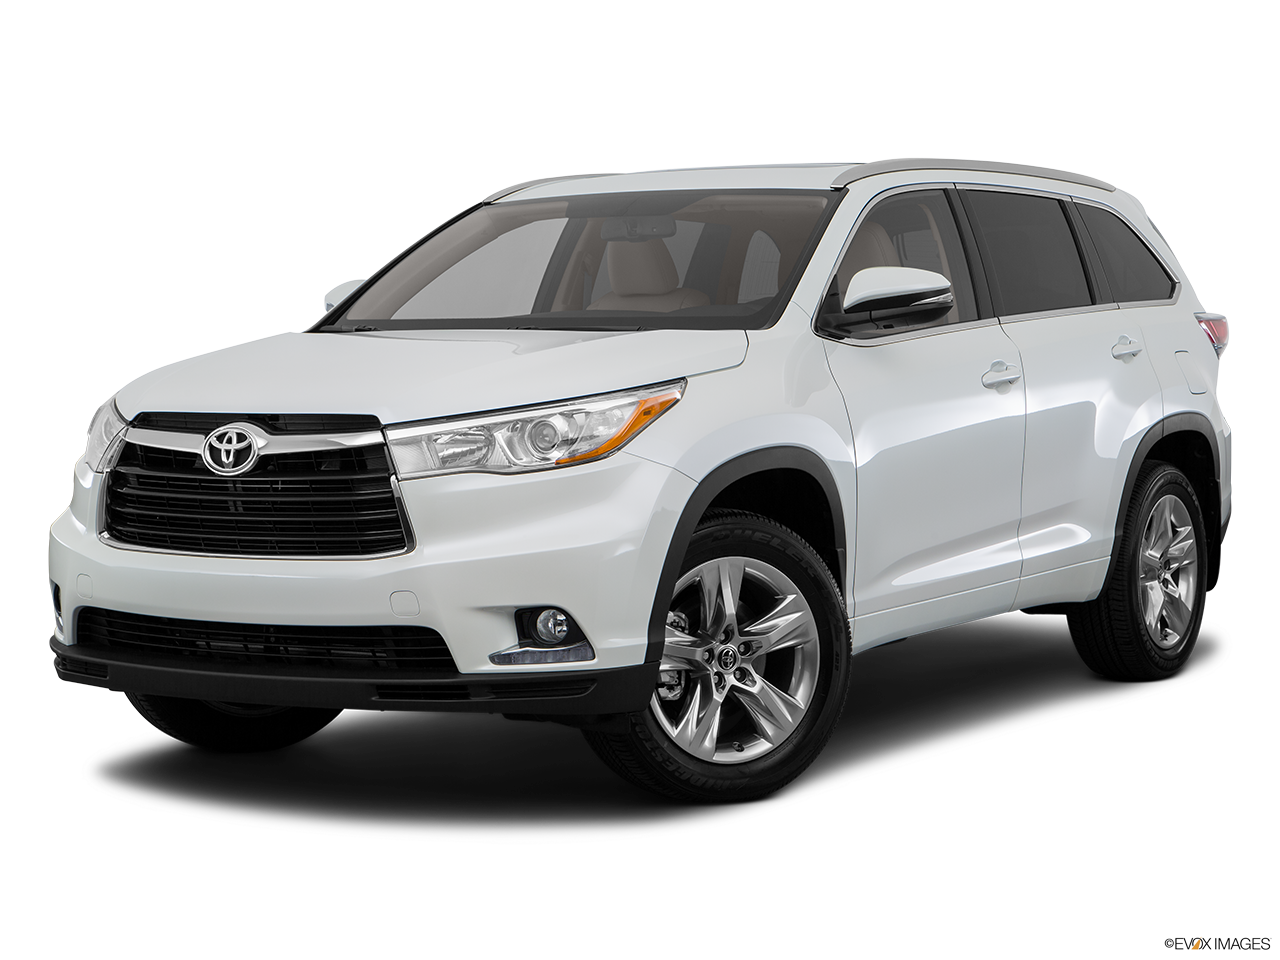 Test Drive A 2016 Toyota Highlander at Tustin Toyota in Tustin